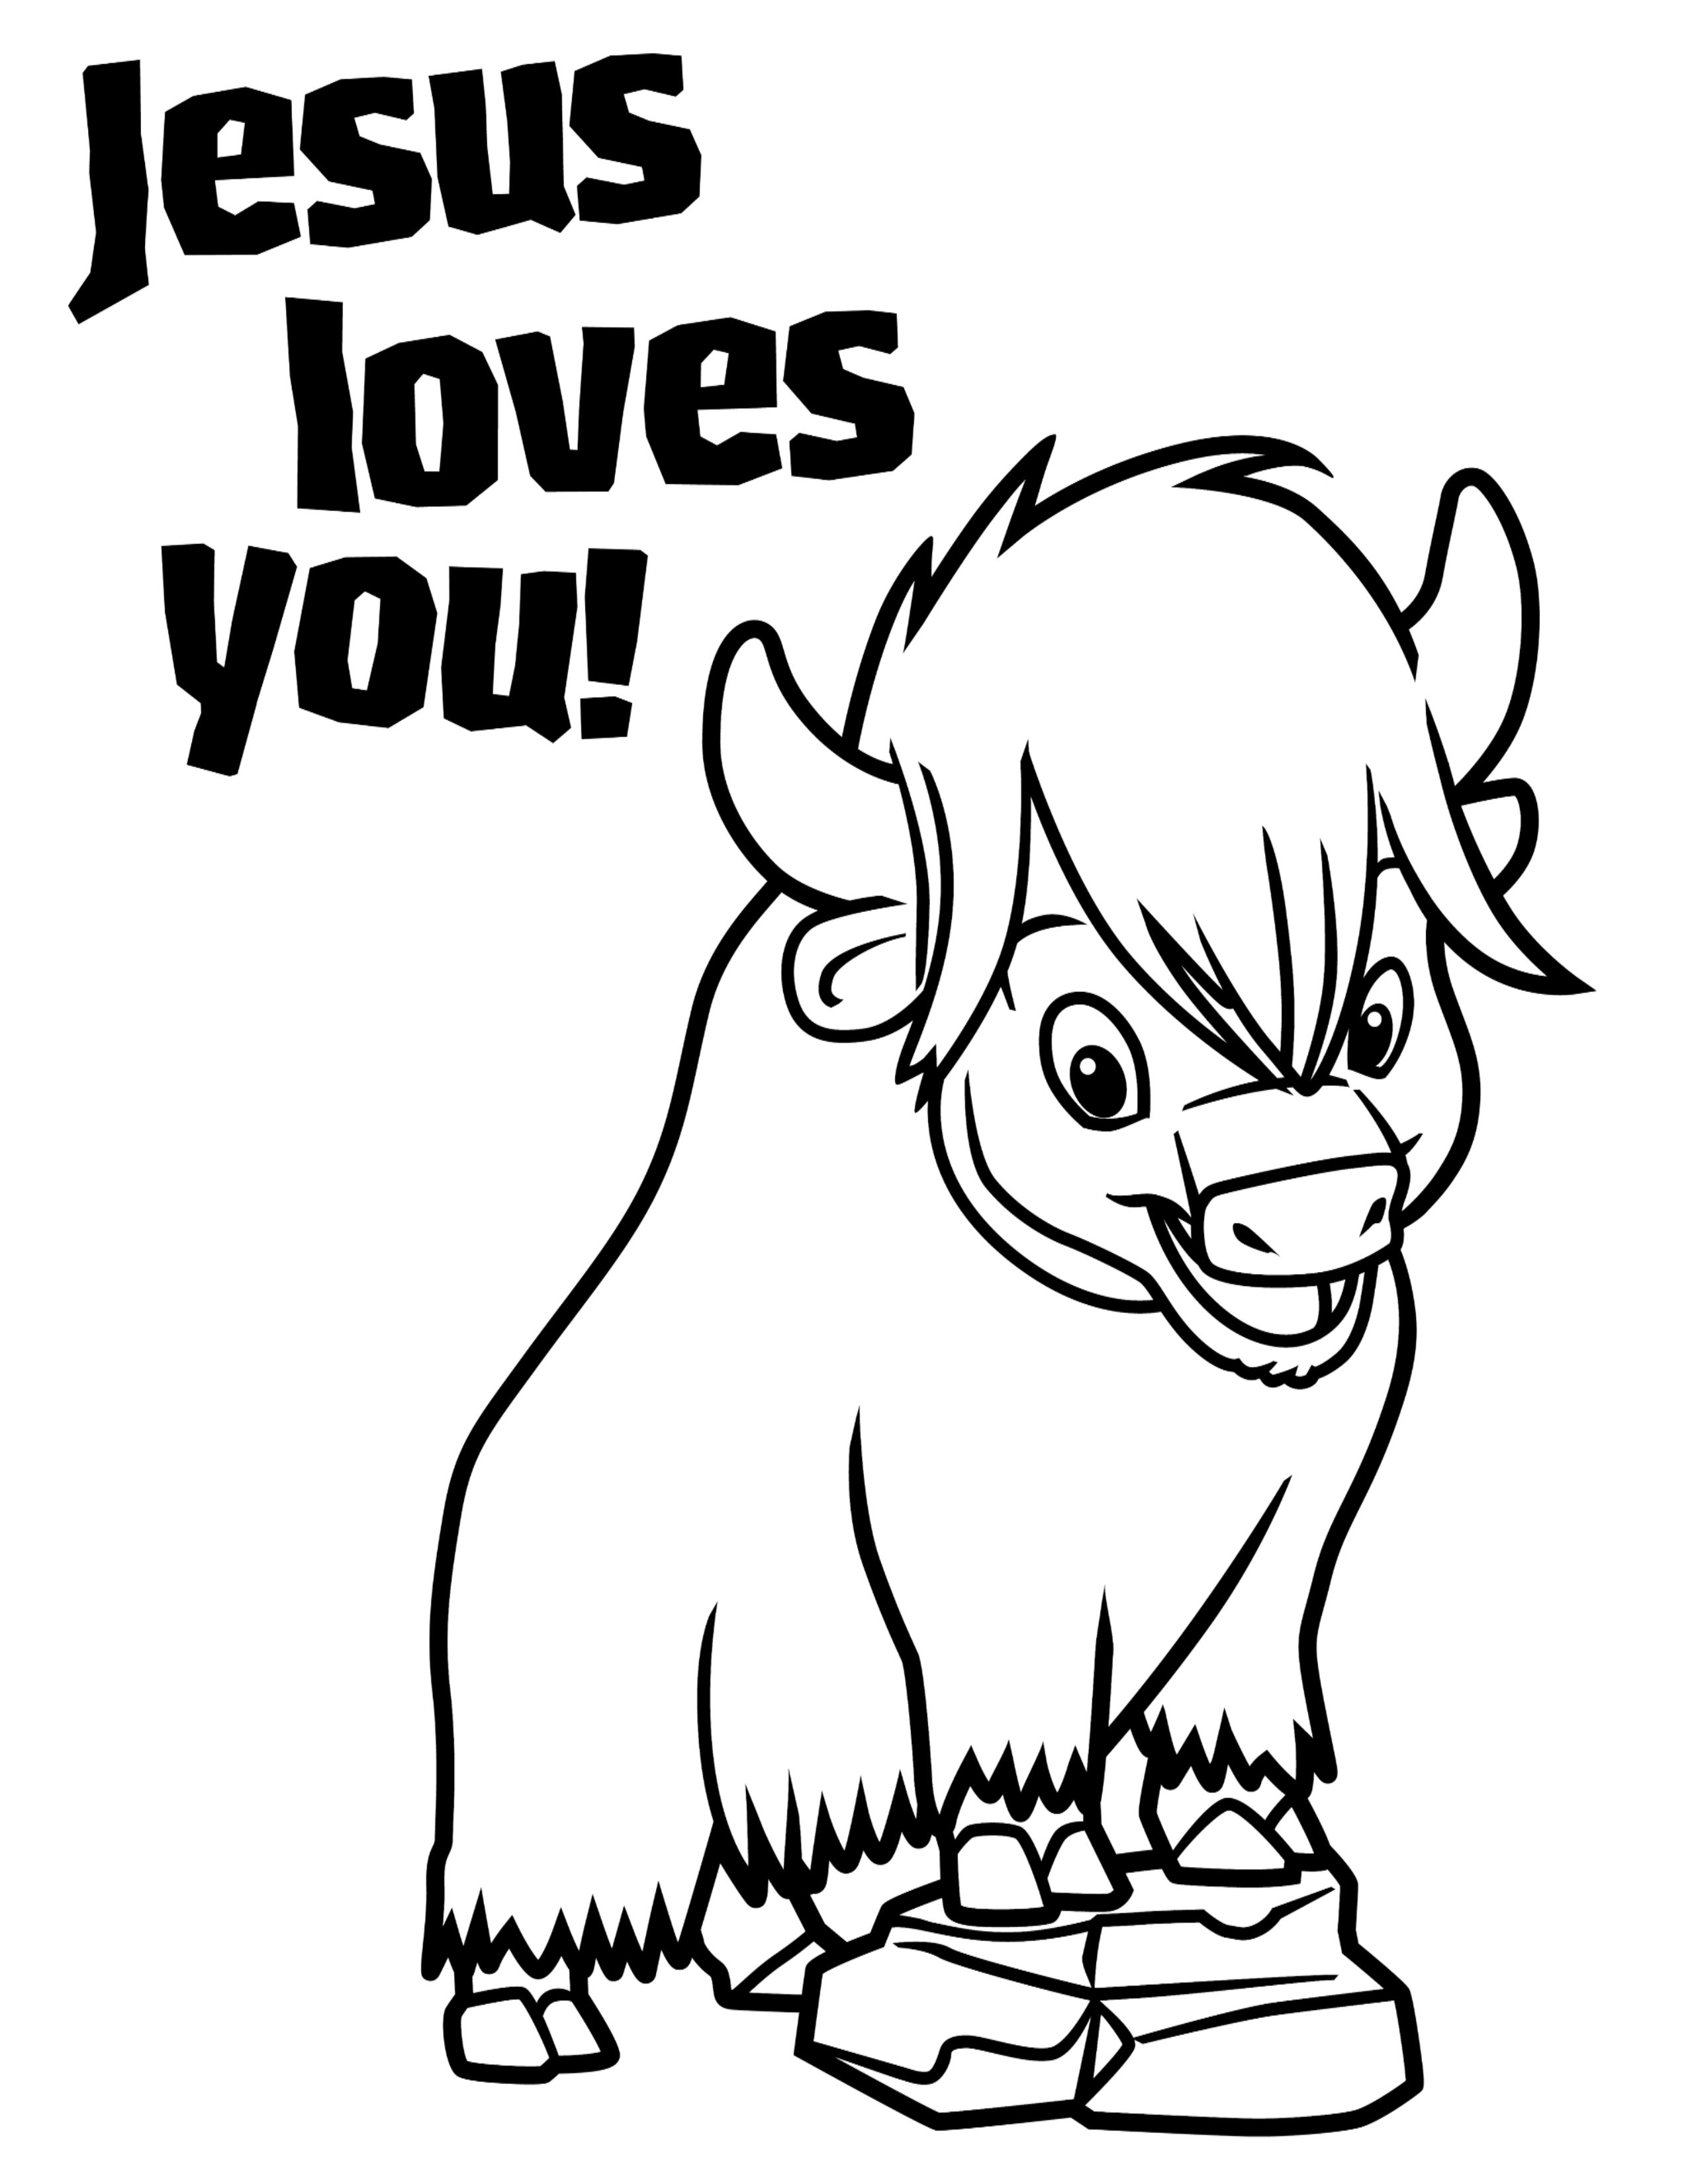 Free coloring pages vbs - Preschool Coloring Page Jesus Loves You Zak